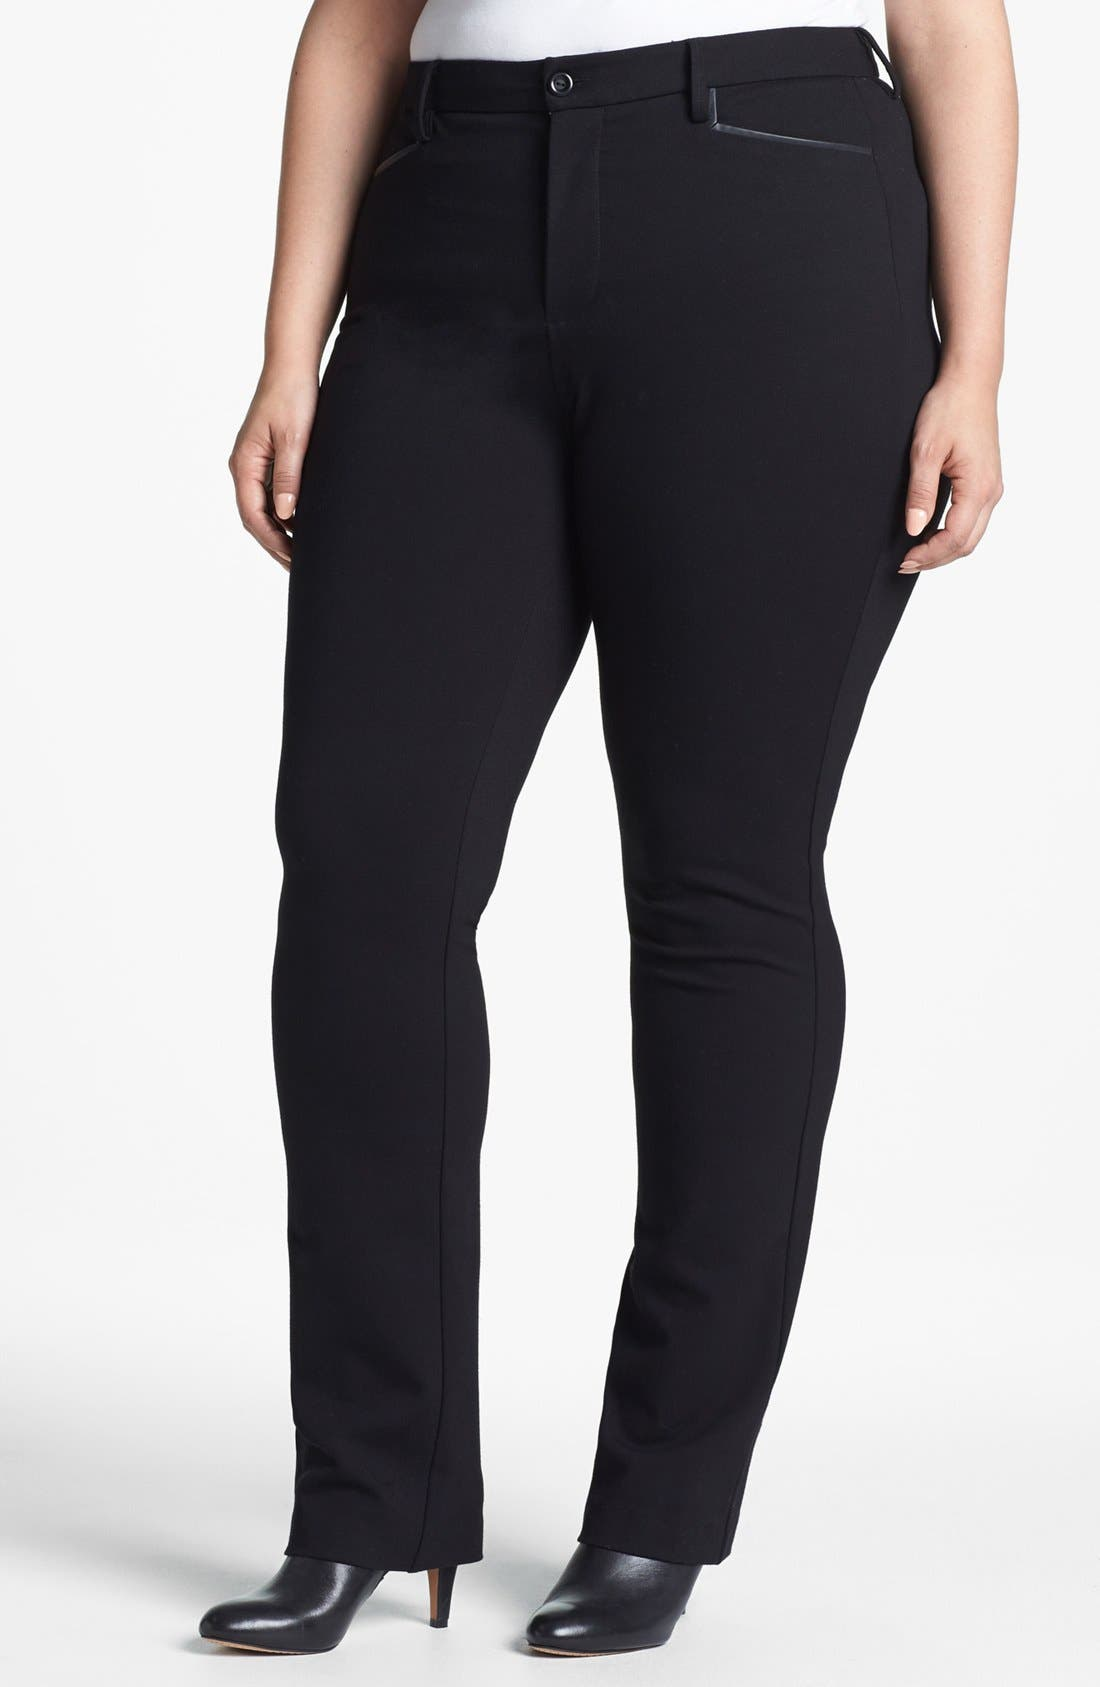 Main Image - NYDJ Faux Leather Trim Stretch Ponte Pants (Plus Size)